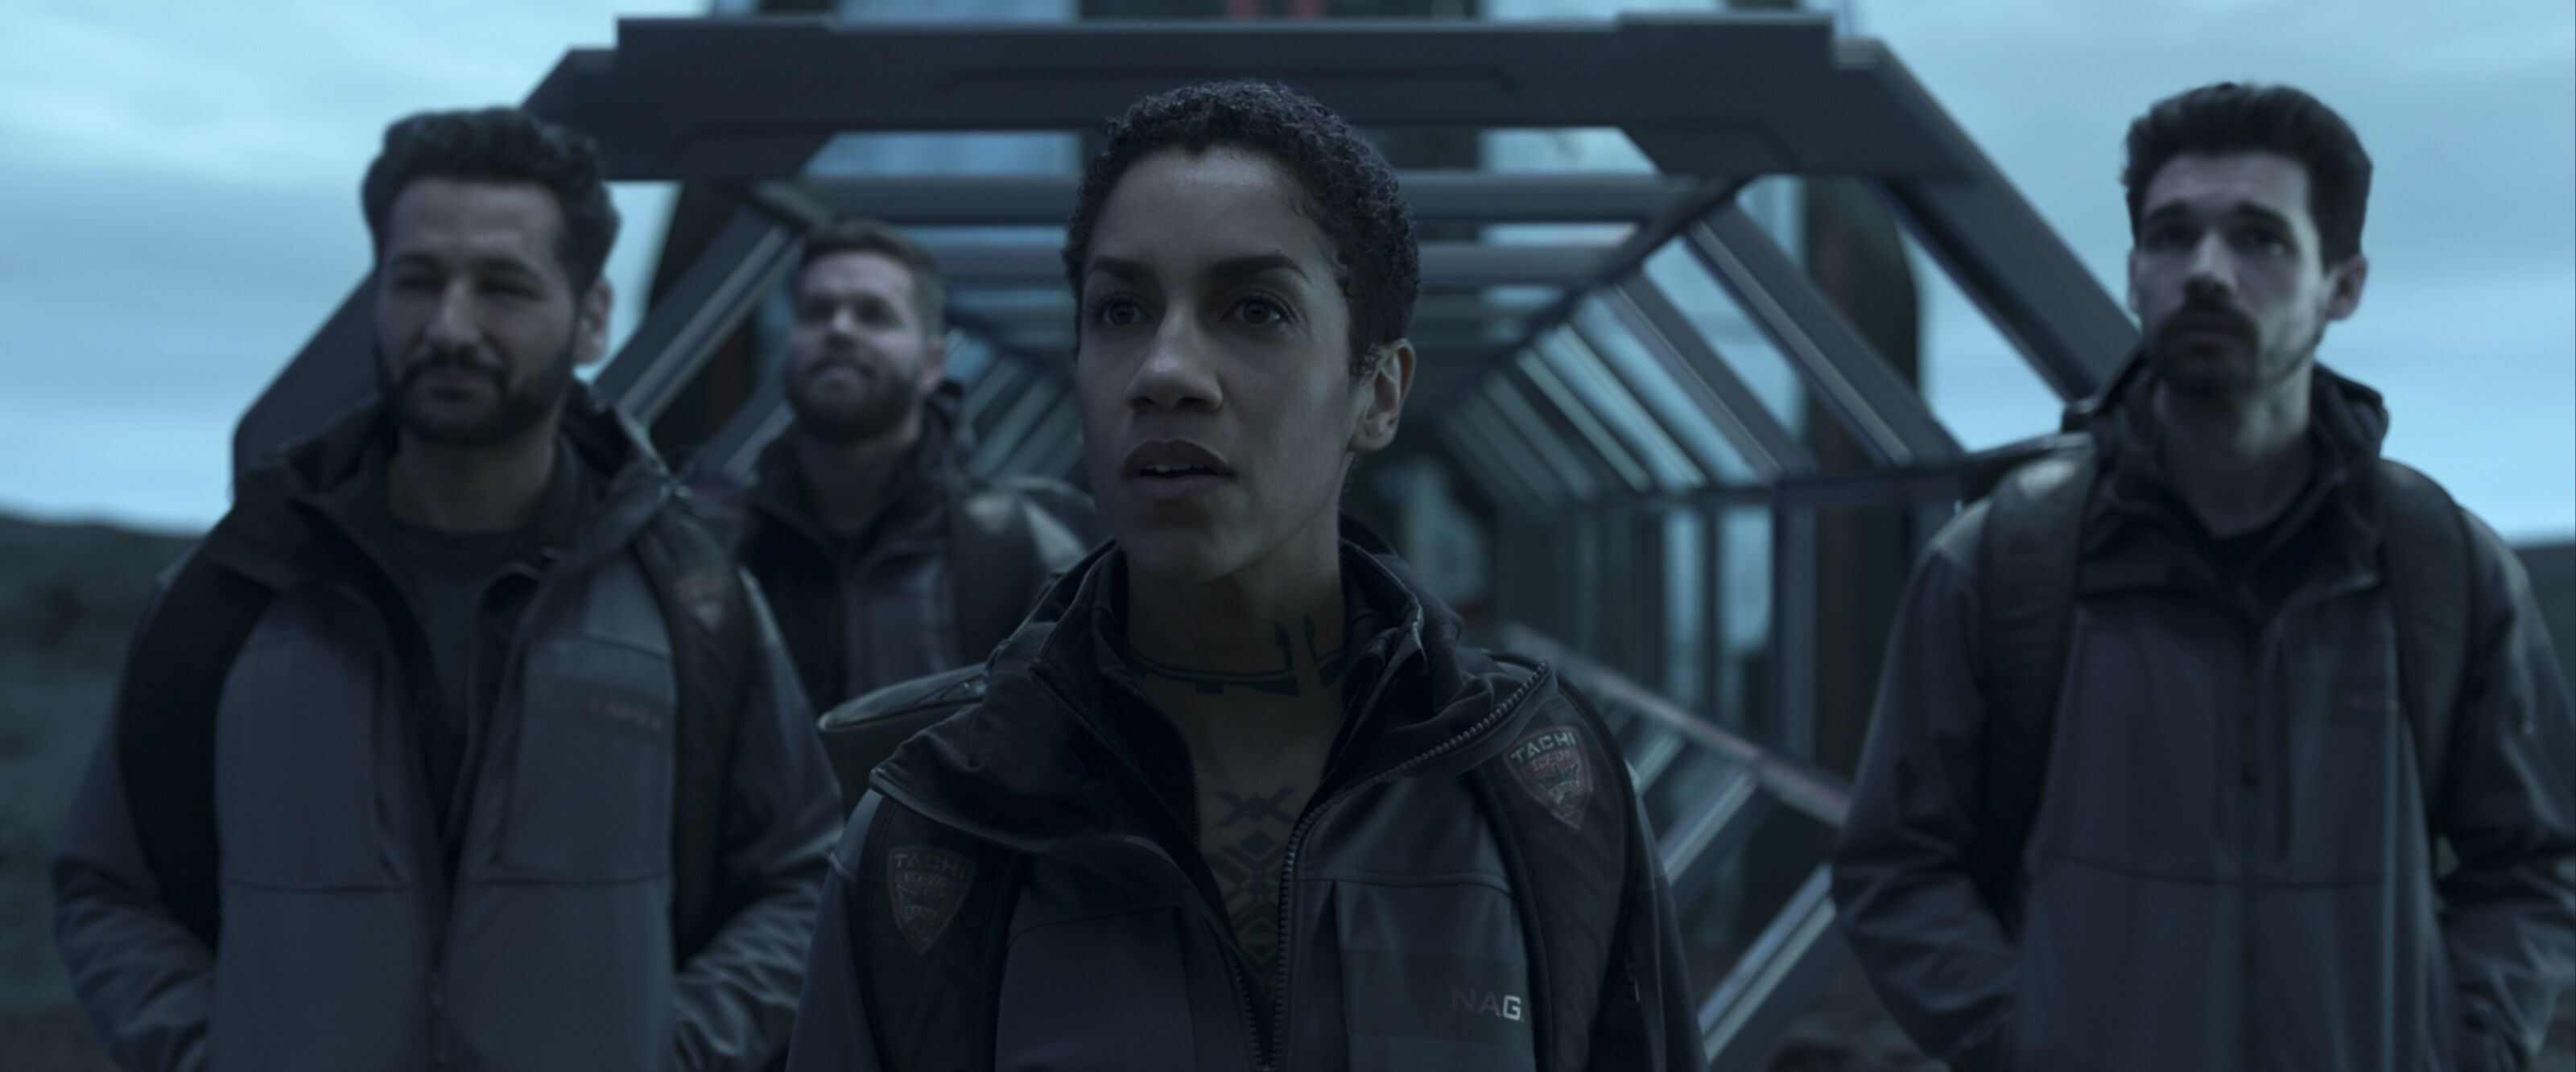 The Expanse season 4 breaks new ground